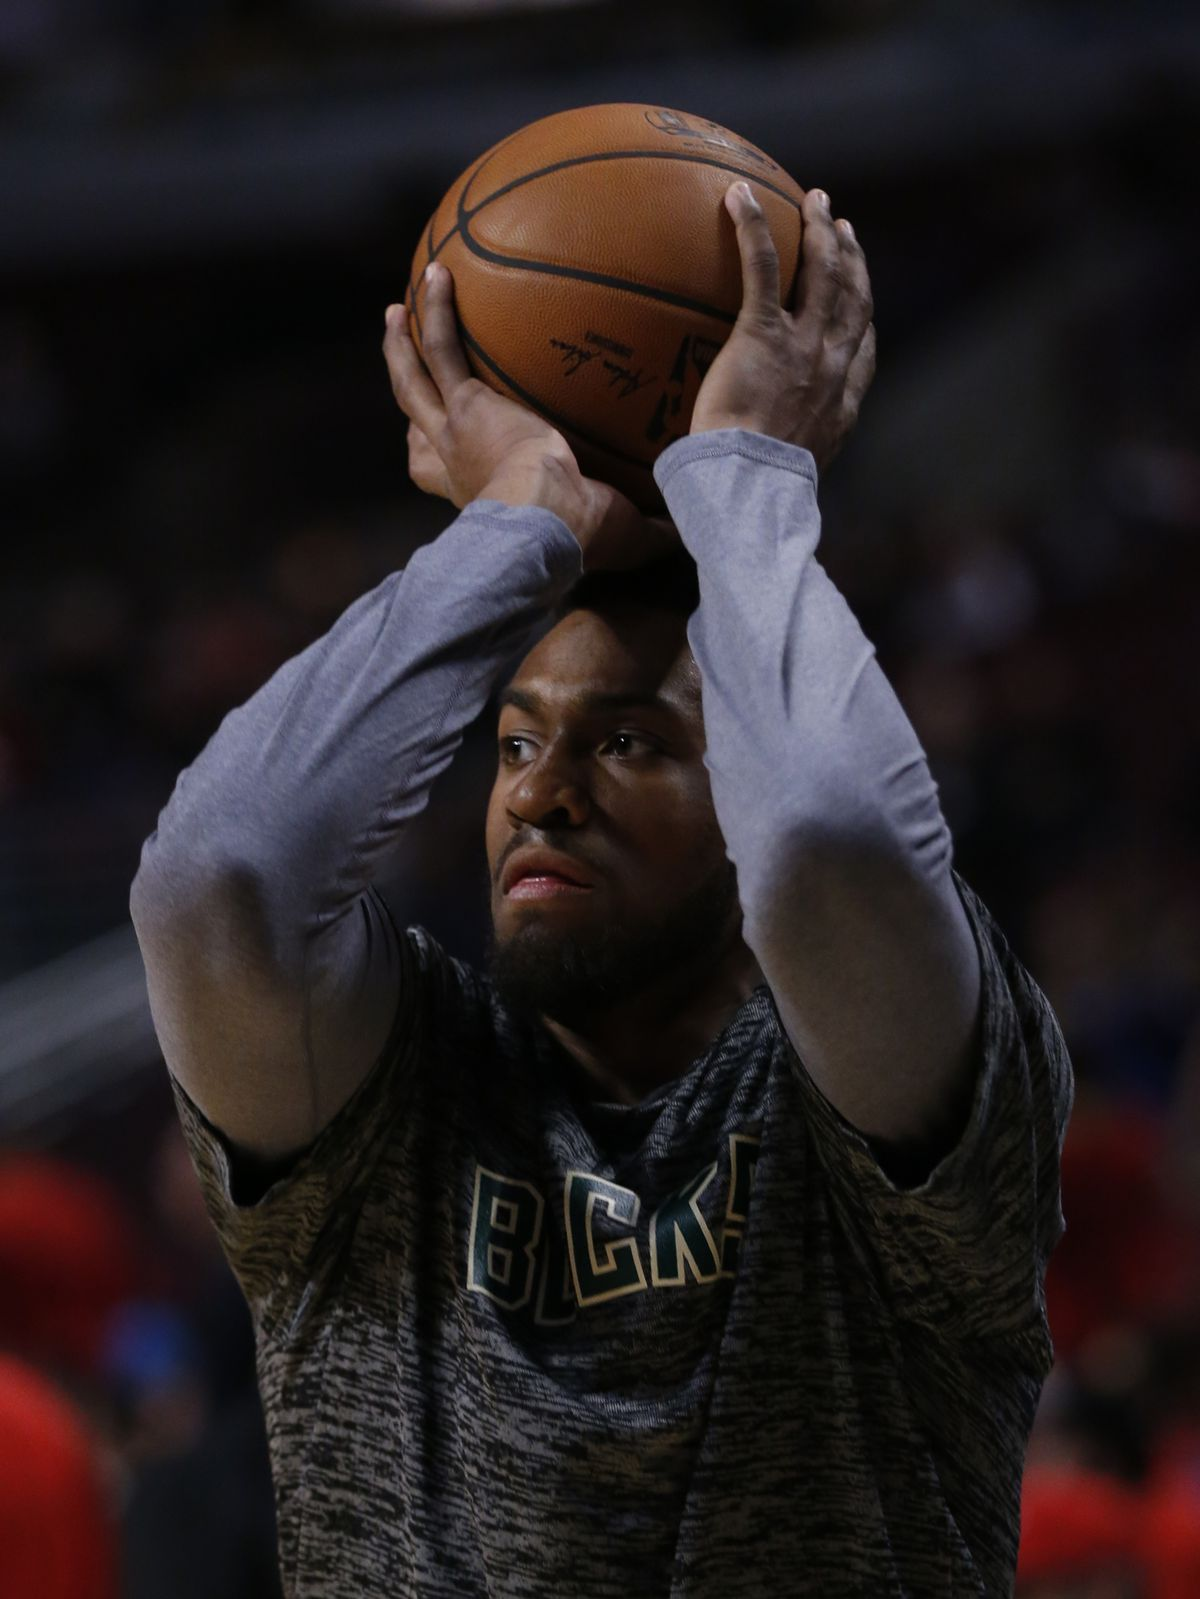 Jabari Parker started his NBA career with the Bucks.